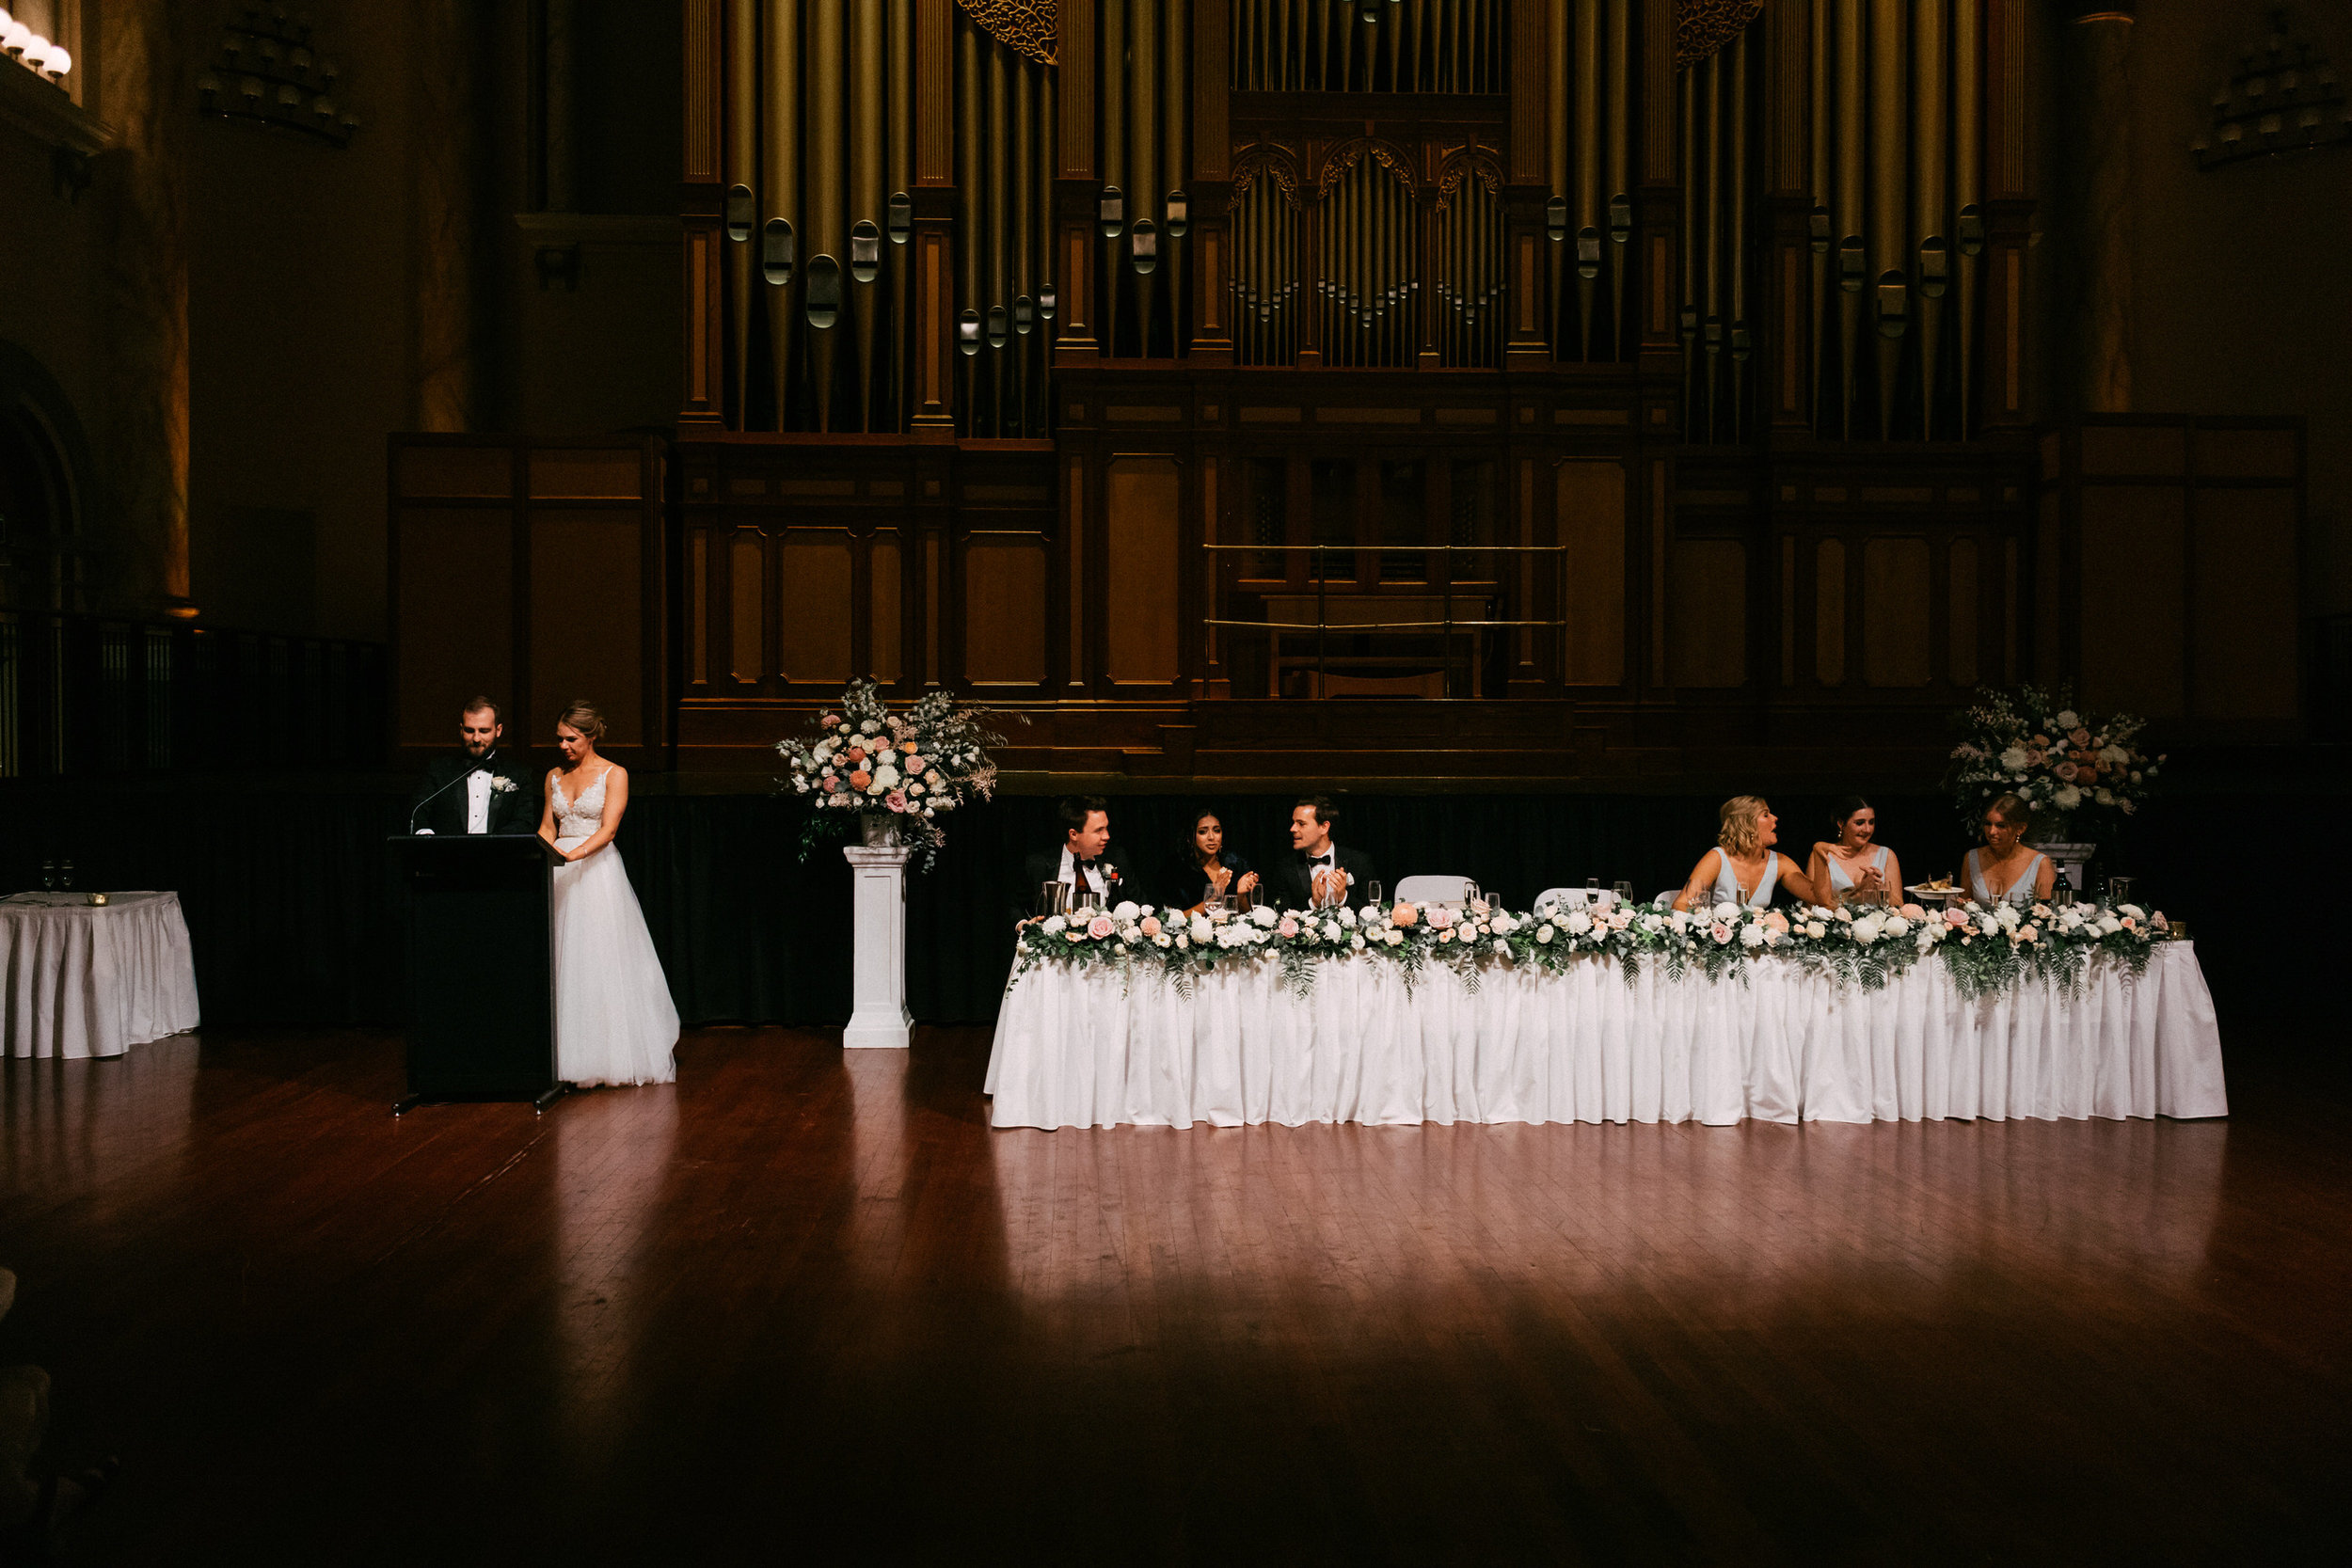 Adelaide Wedding 2019 184.jpg